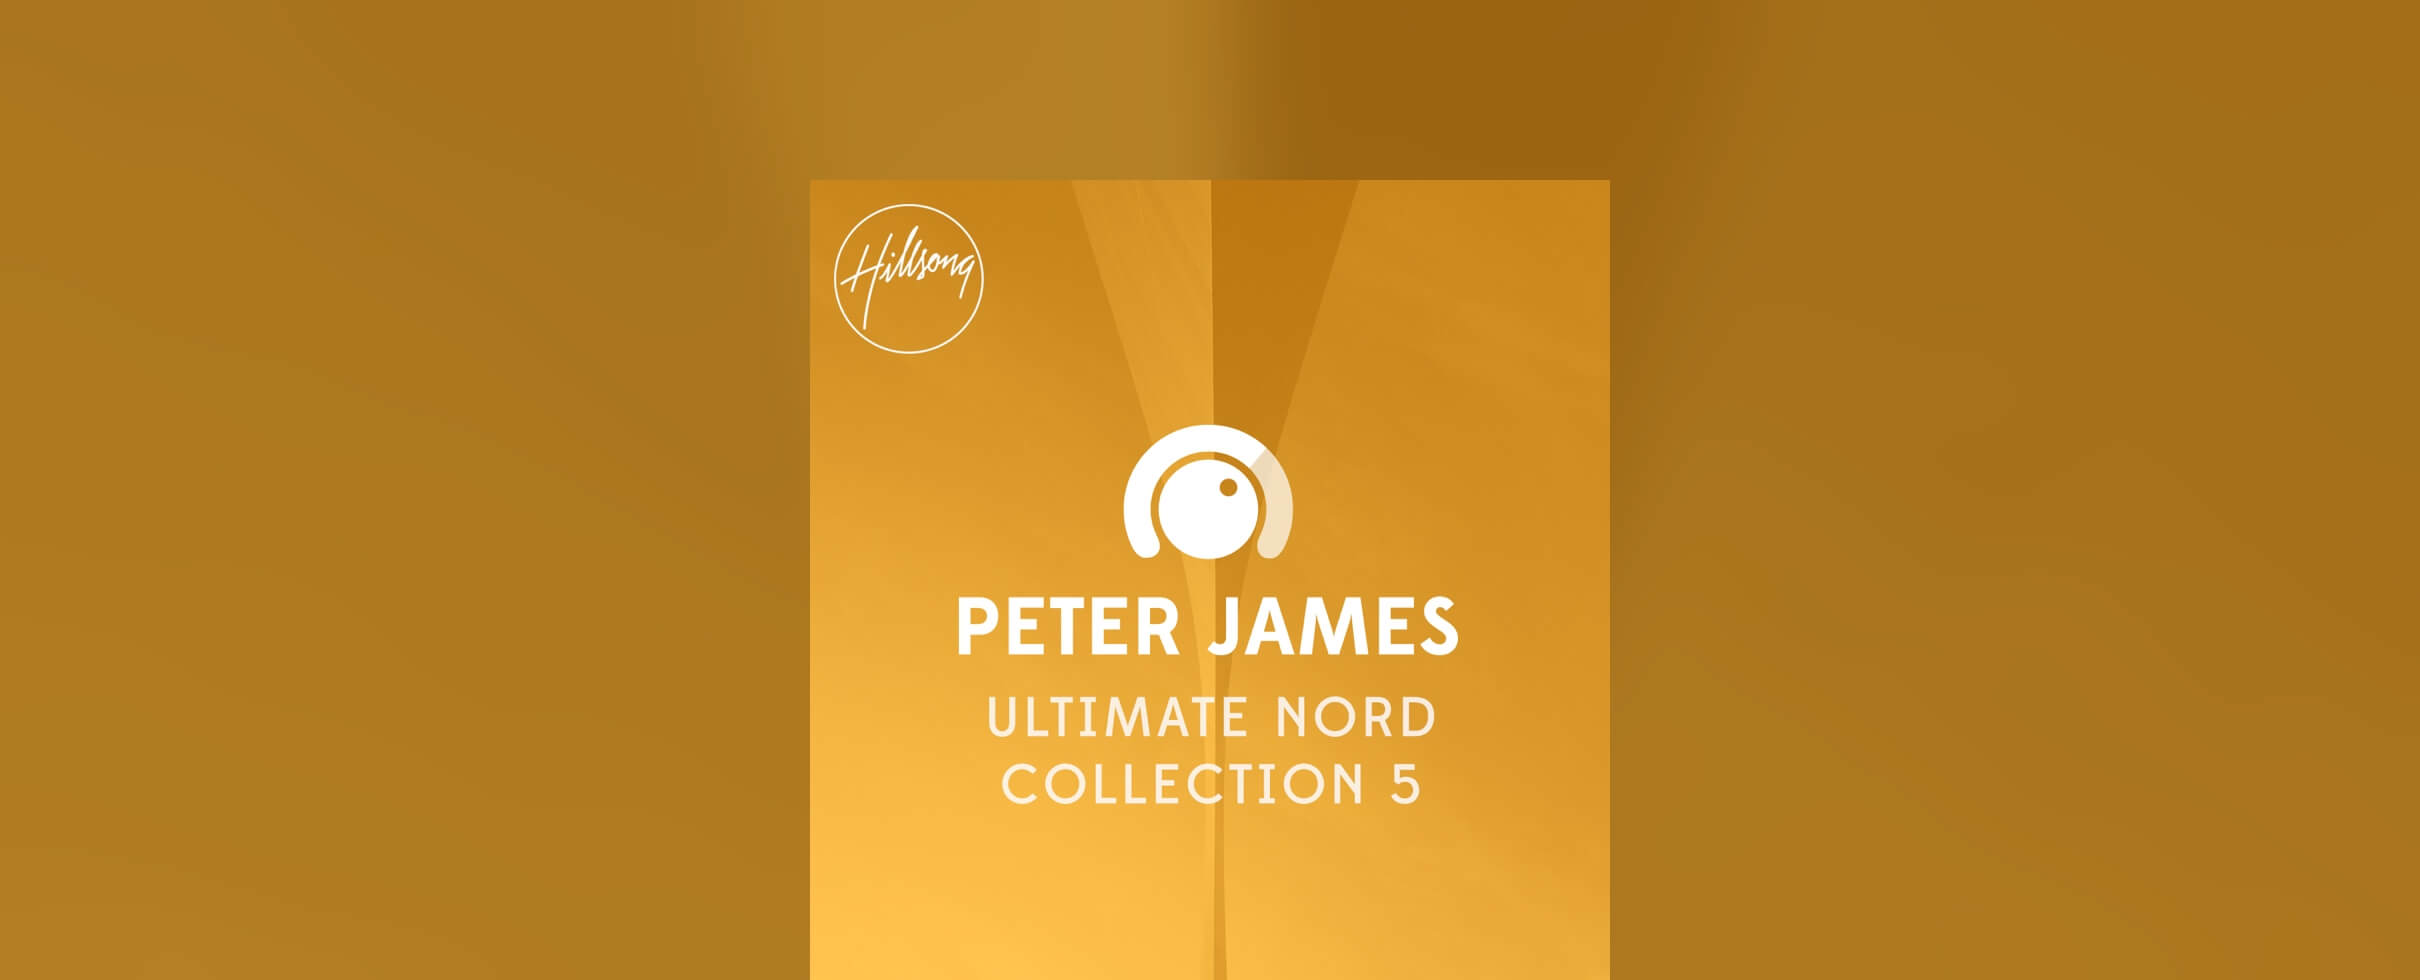 <h1>Stage 3 Bundle</h1> <strong>Peter James</strong>